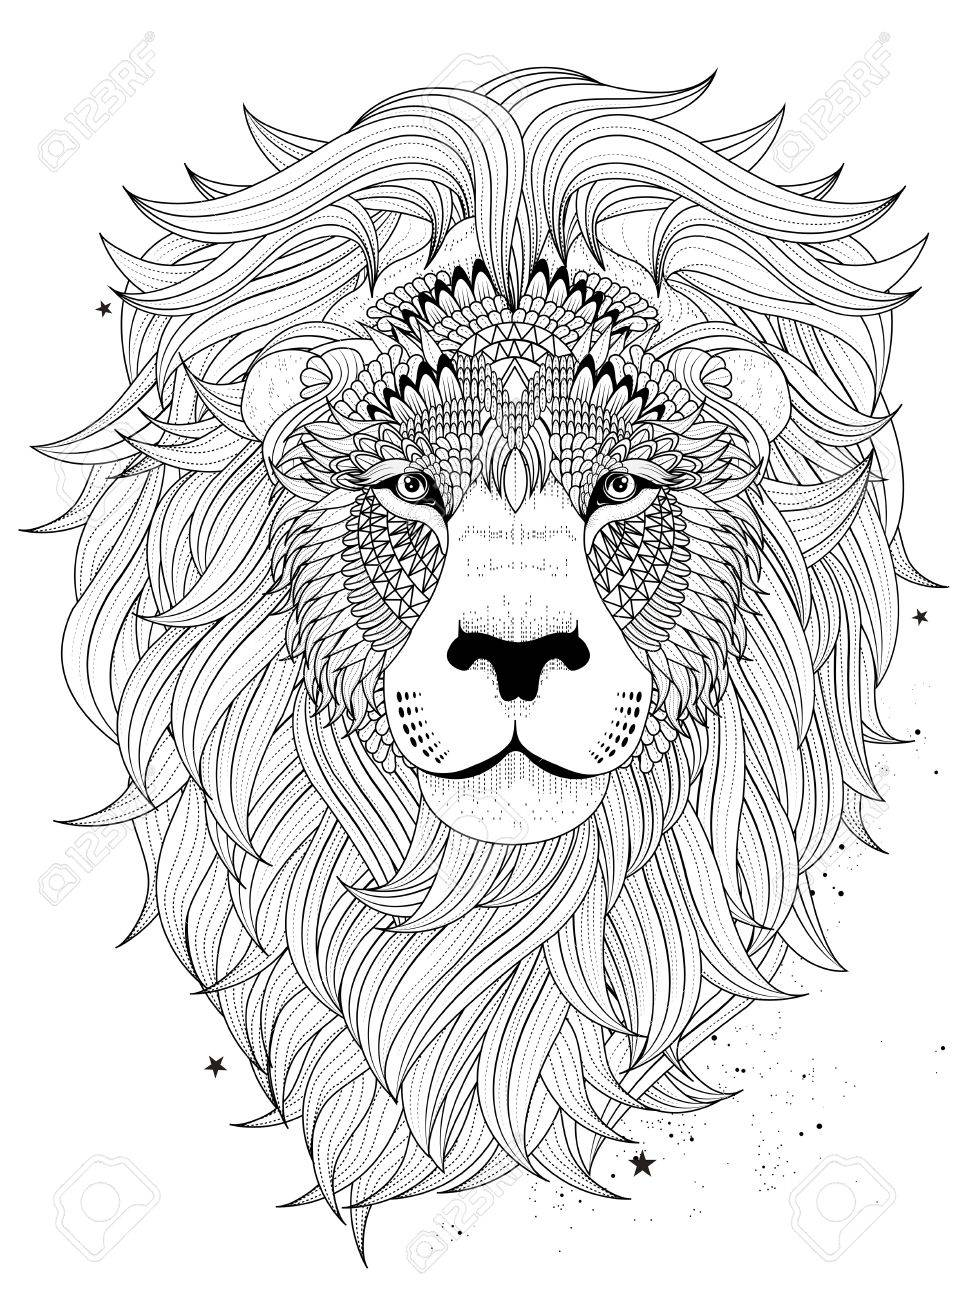 Lion head coloring pages - Vector Attractive Fluffy Lion Head Adult Coloring Page